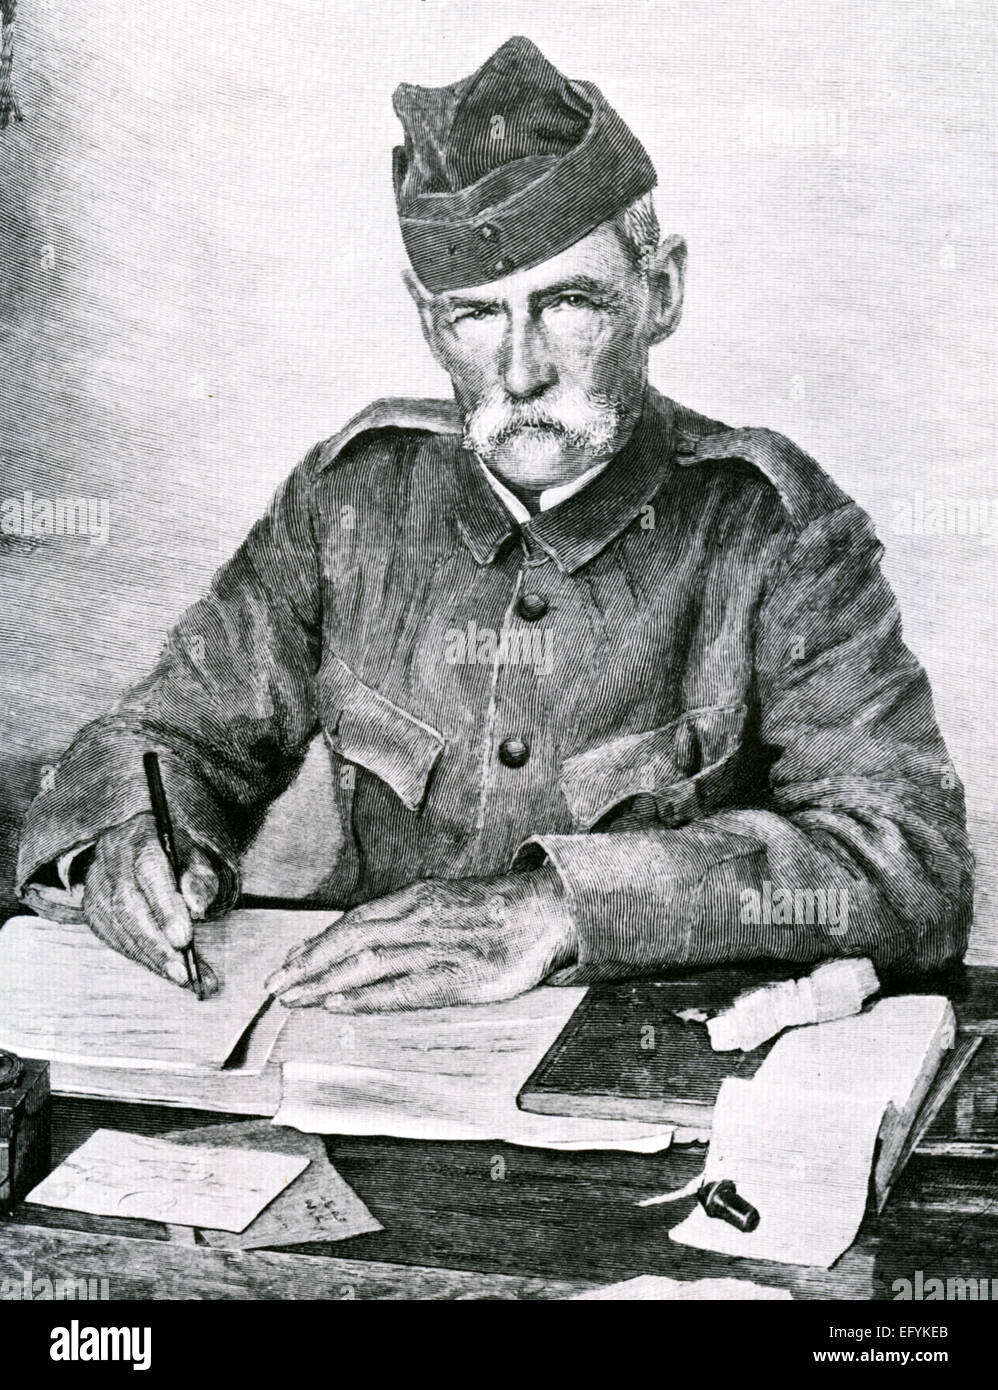 FREDERICK ROBERTS, 1st Earl Roberts (1832-1914) British soldier  before the capture of Bloemfontein in 1900 during - Stock Image